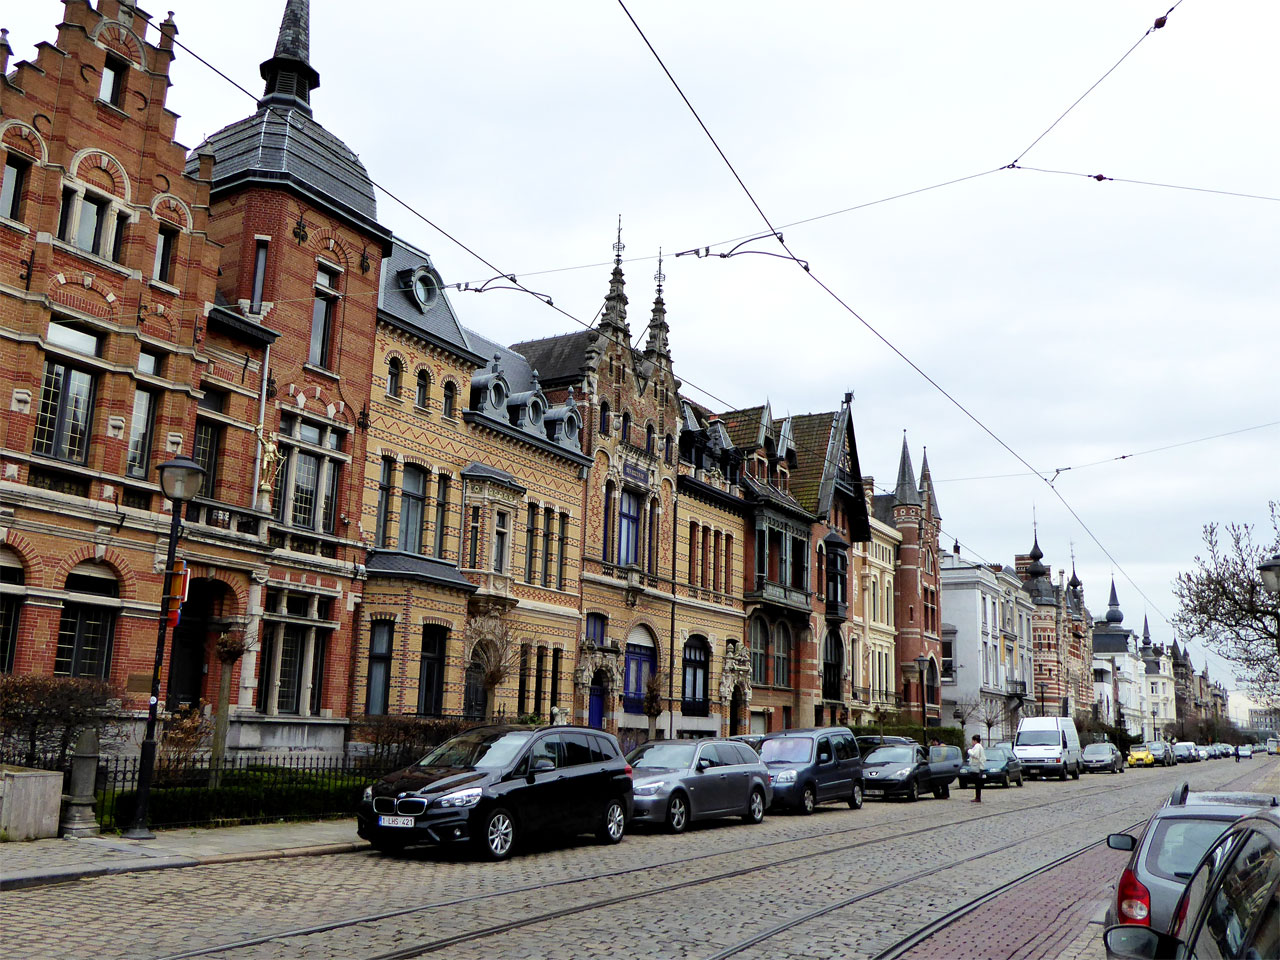 Houses on Cogels-Osylei, Zurenborg, Antwerp